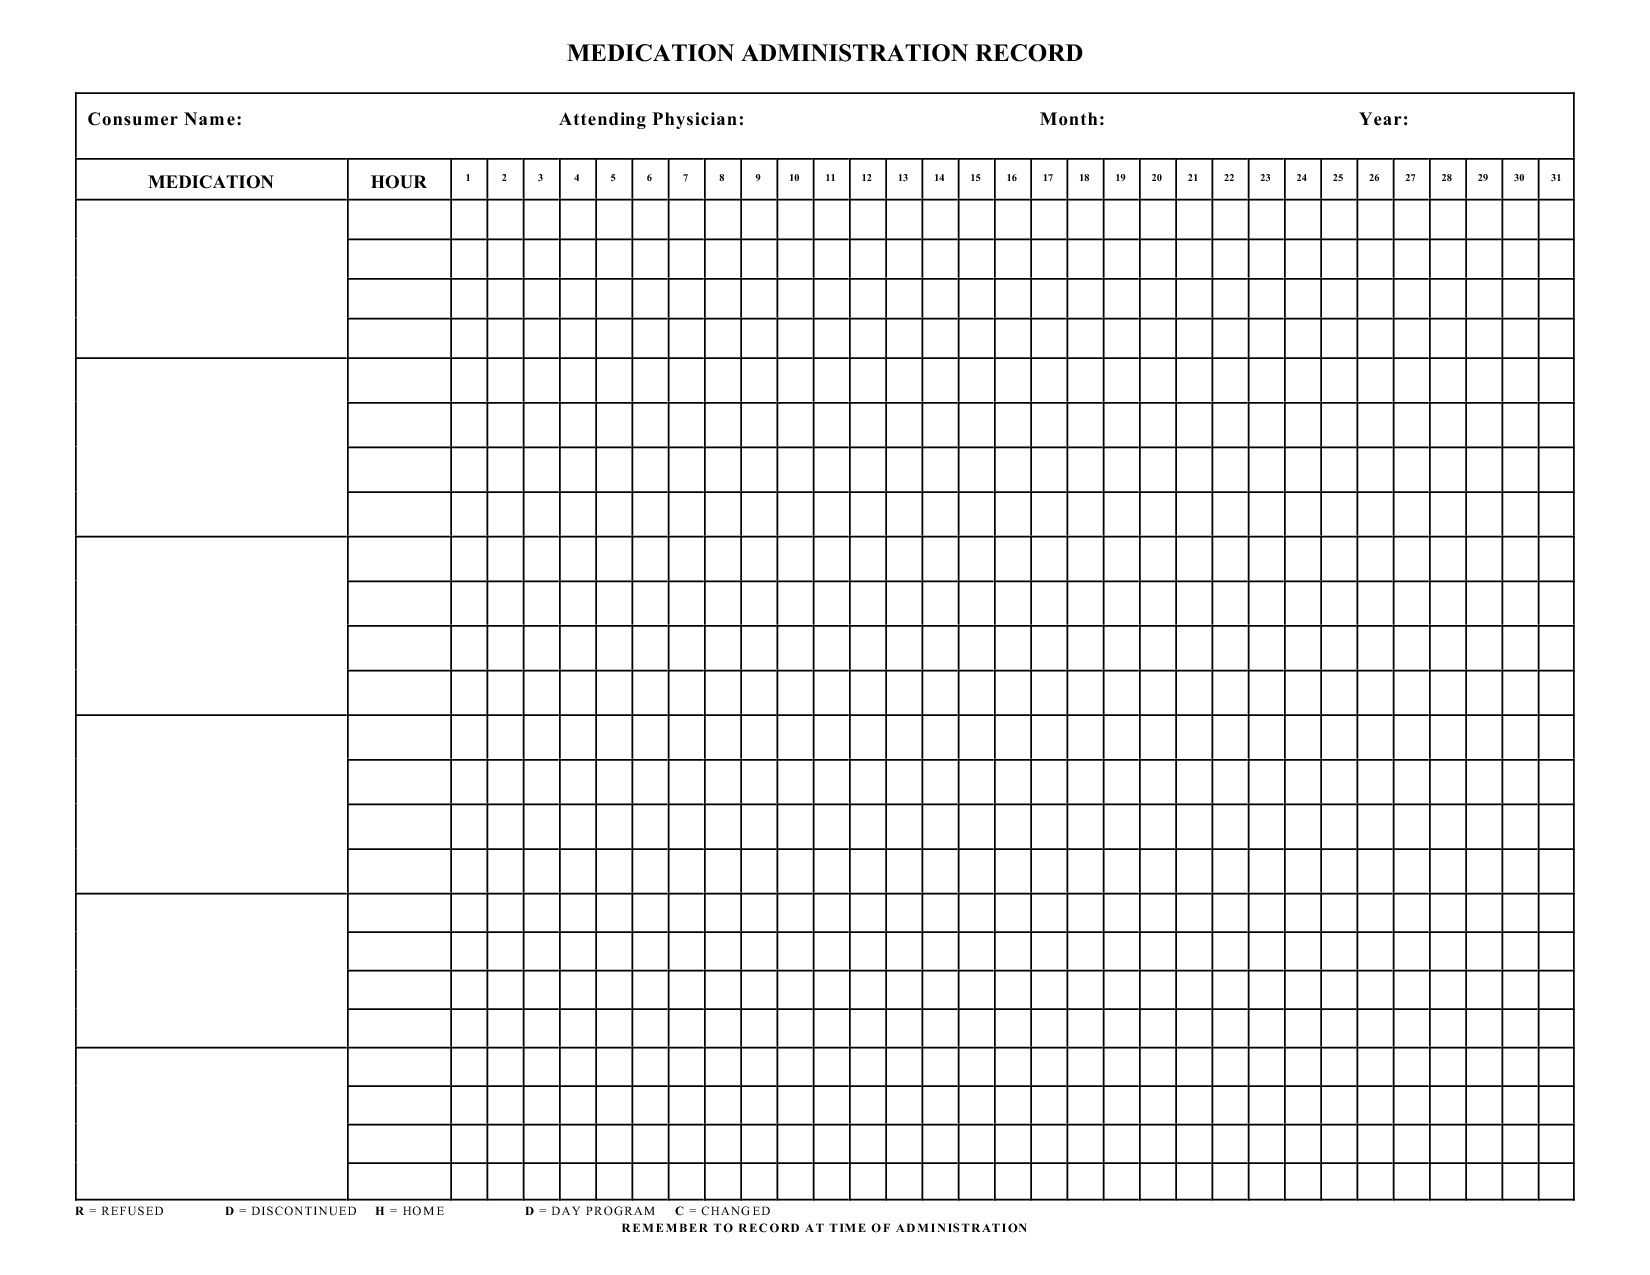 004 Dreaded Medication Administration Record Template Pdf High Resolution  Simple FreeFull